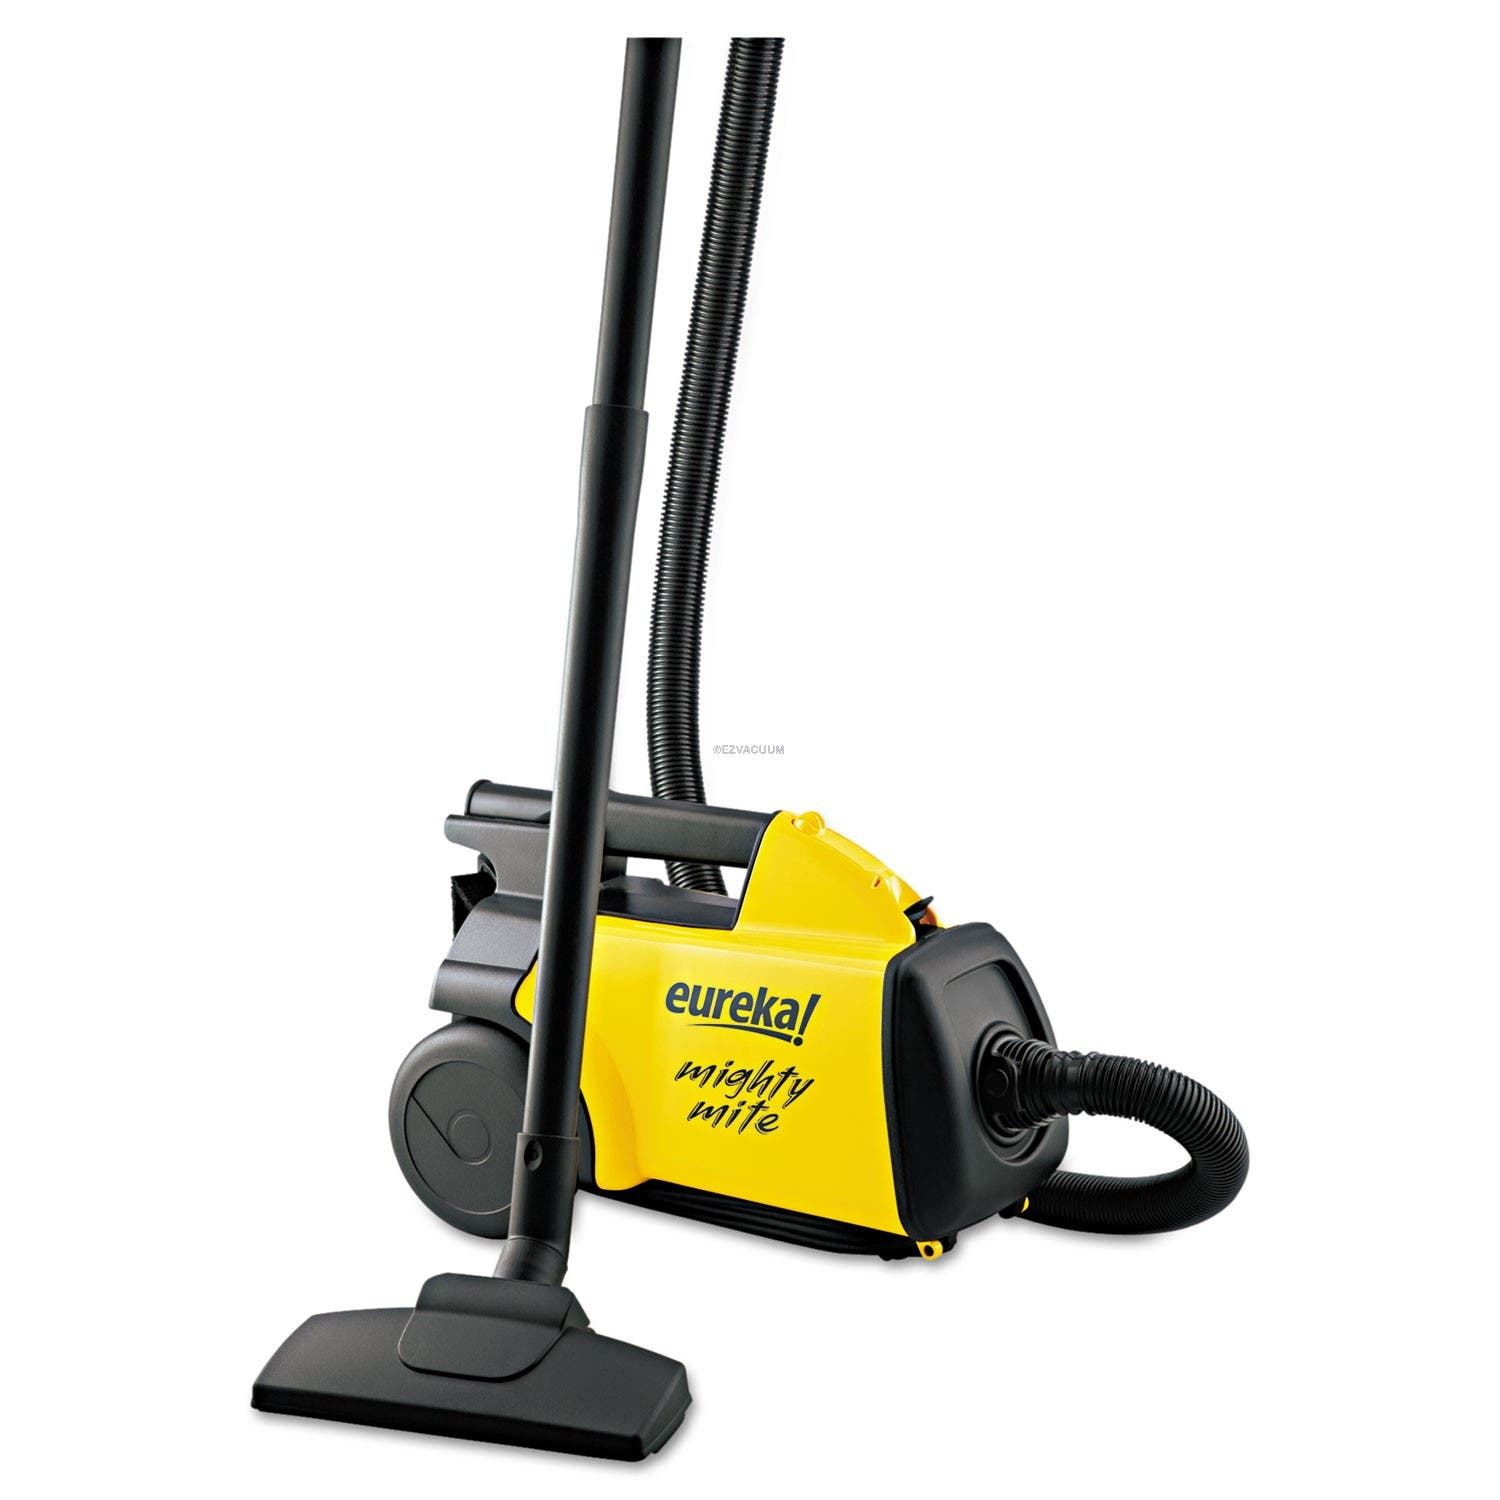 Eureka Lightweight Mighty Mite Canister Vacuum, 9A Motor, 8.2 lb, Yellow 3670G